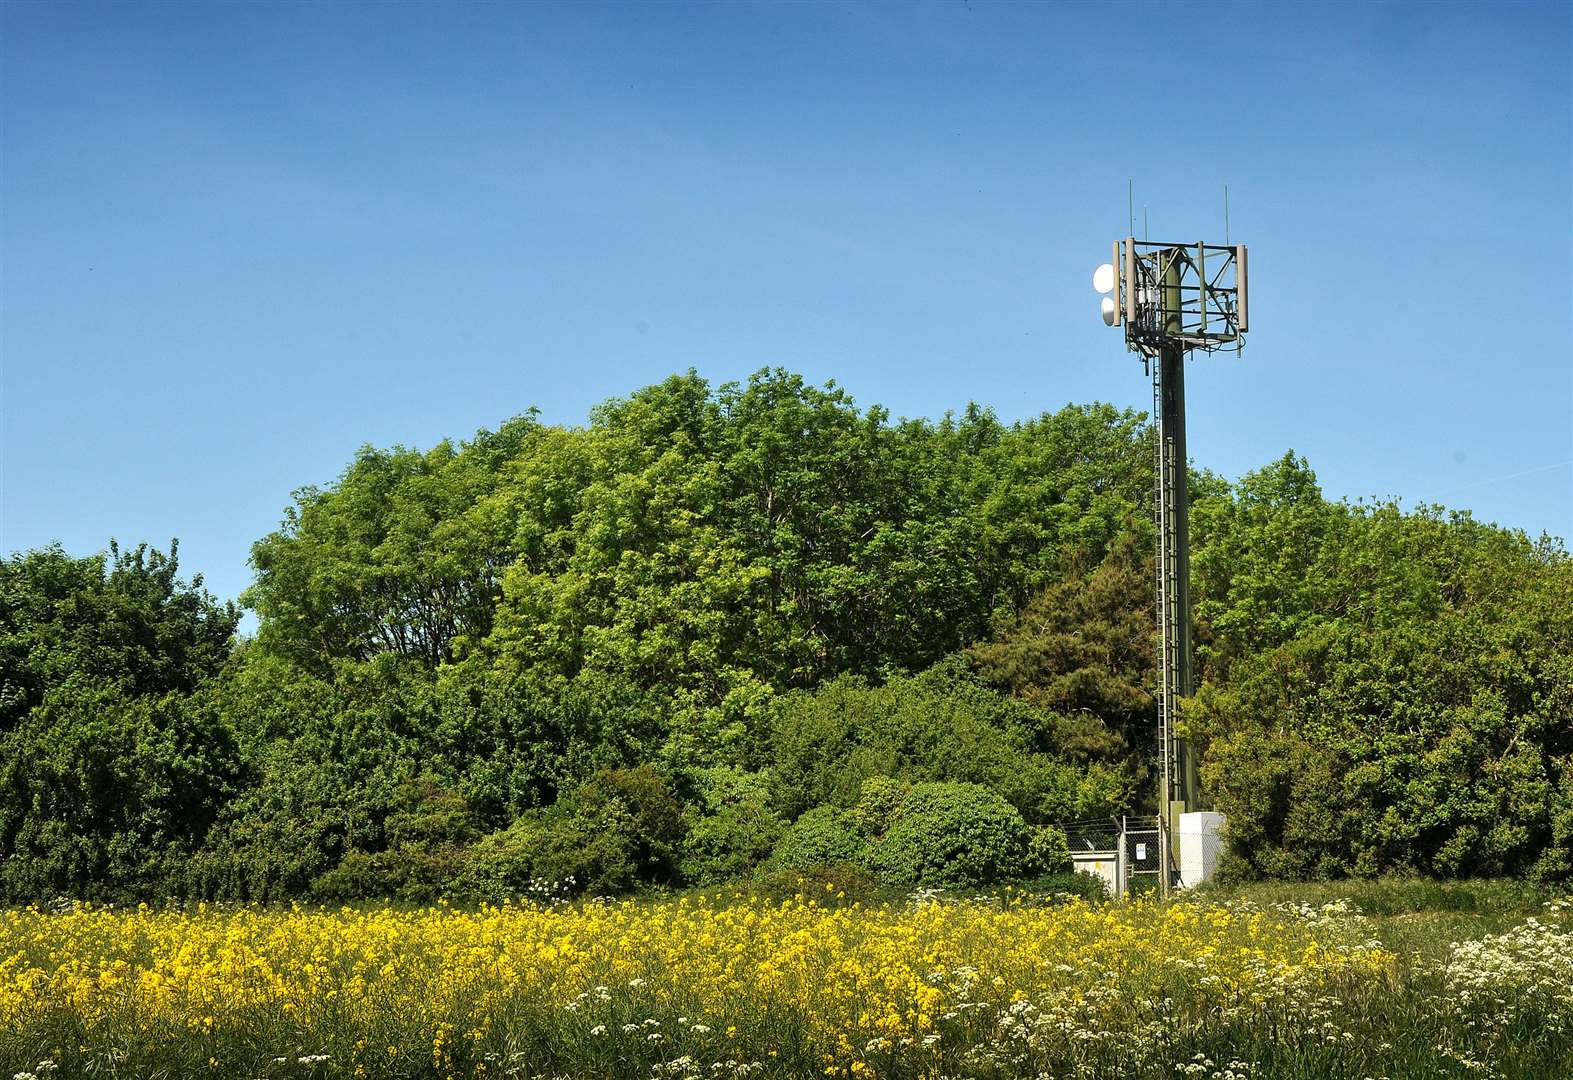 More than half of West Norfolk still without 4G phone coverage, says new report